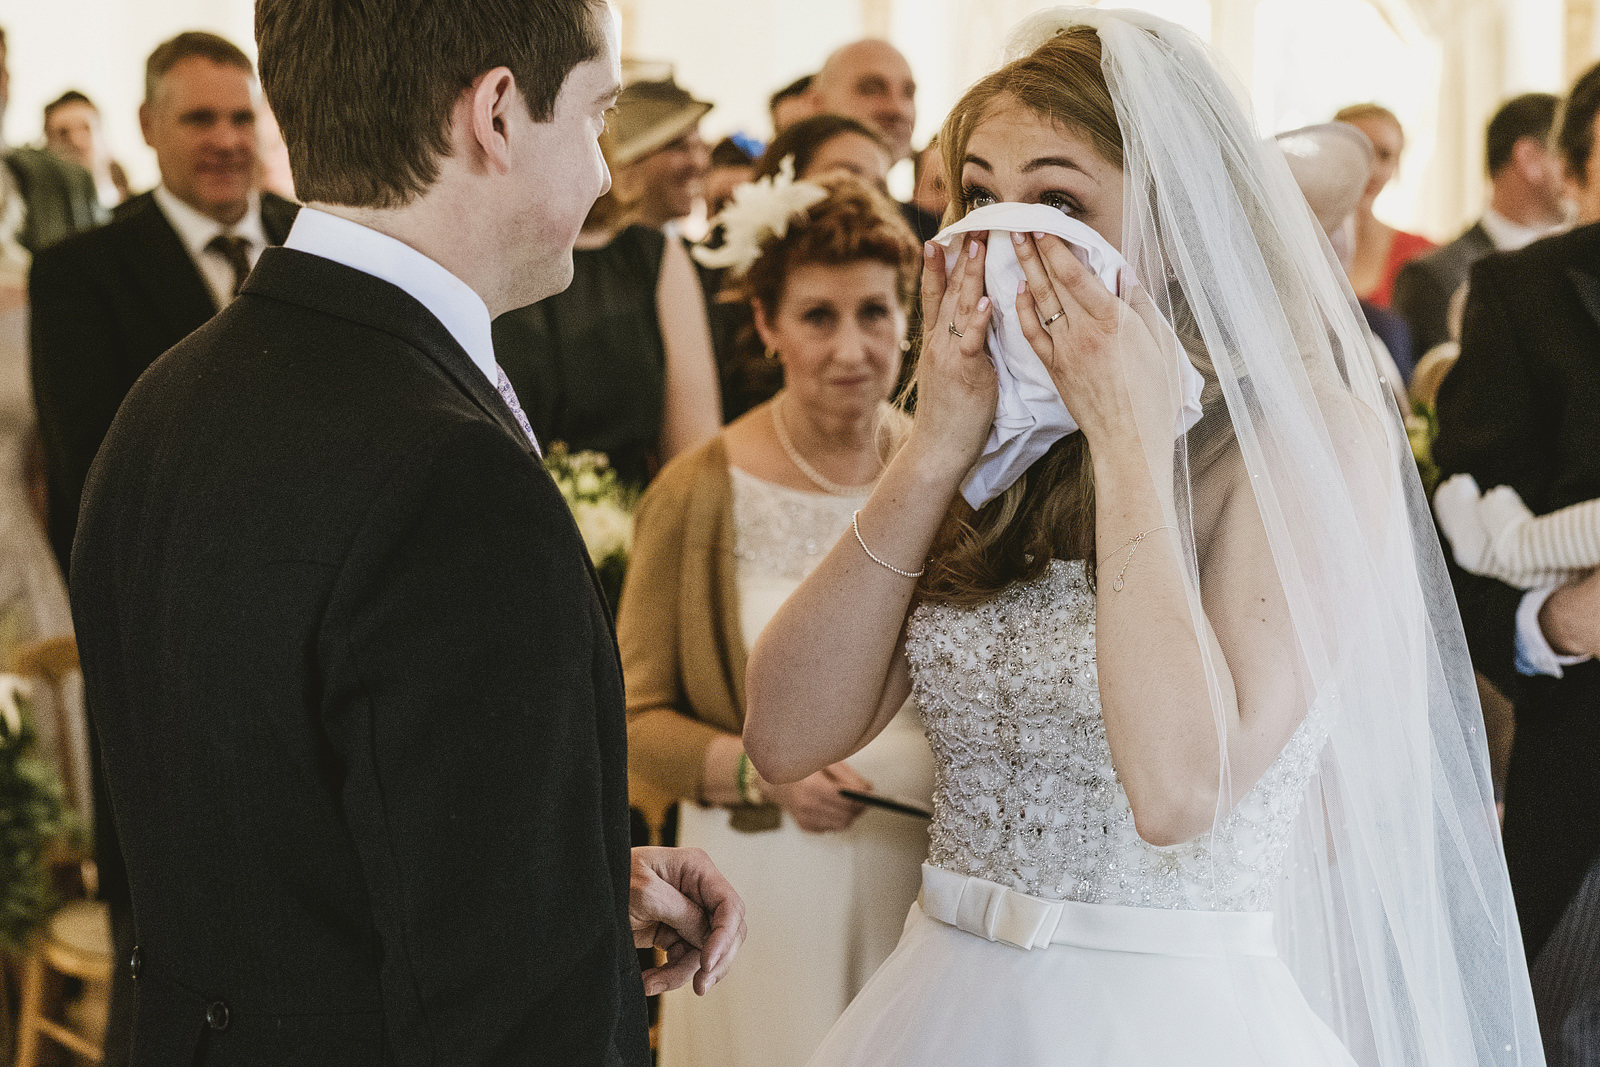 Reportage wedding photographers focus not just on the obvious moments of a ceremony but on the fun, quirky, offbeat moments such as the bride's face half covered by a handkerchief as emotion overcomes her in this example captured at Northbrook Park, UK